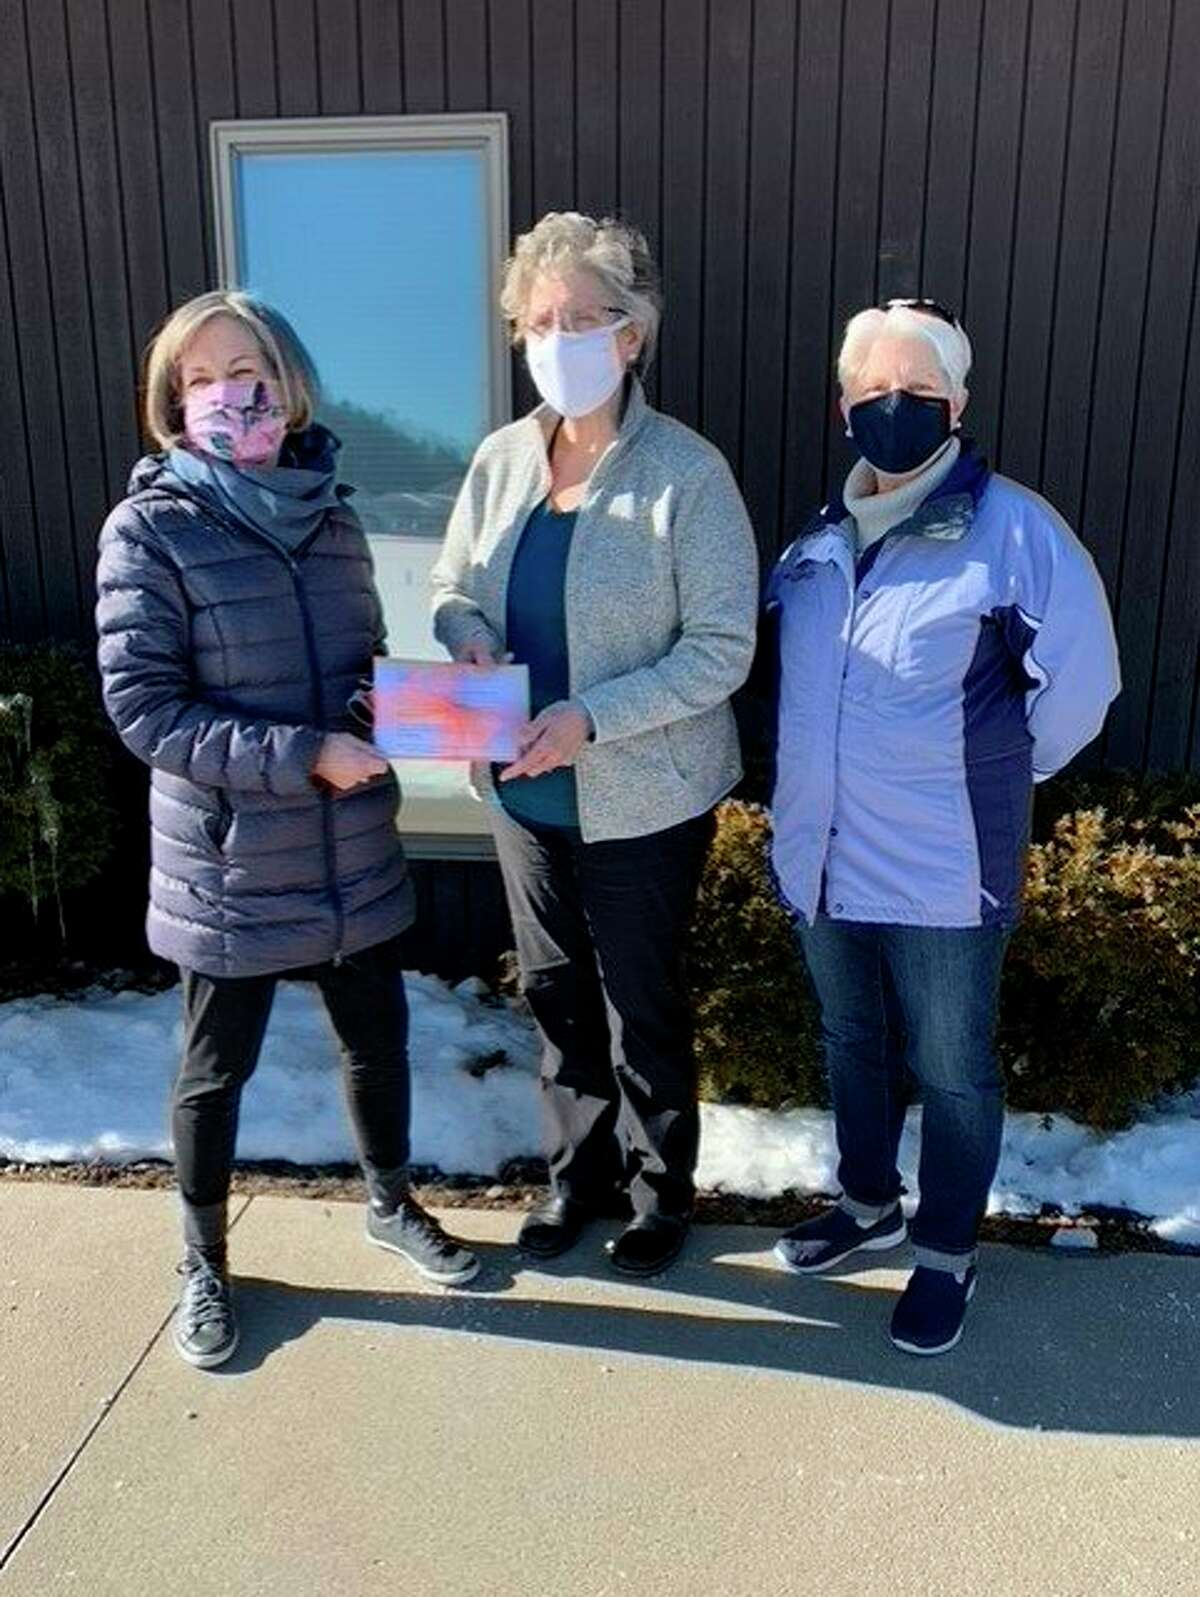 Molly Harrison, 100+Women Who Care member and BACN board member, presents a check to Gerri Van Antwerp, executive director of BACN, with Ann Henning,100+ Women Who Care member and Community Outreach member for BACN. (Courtesy Photo)